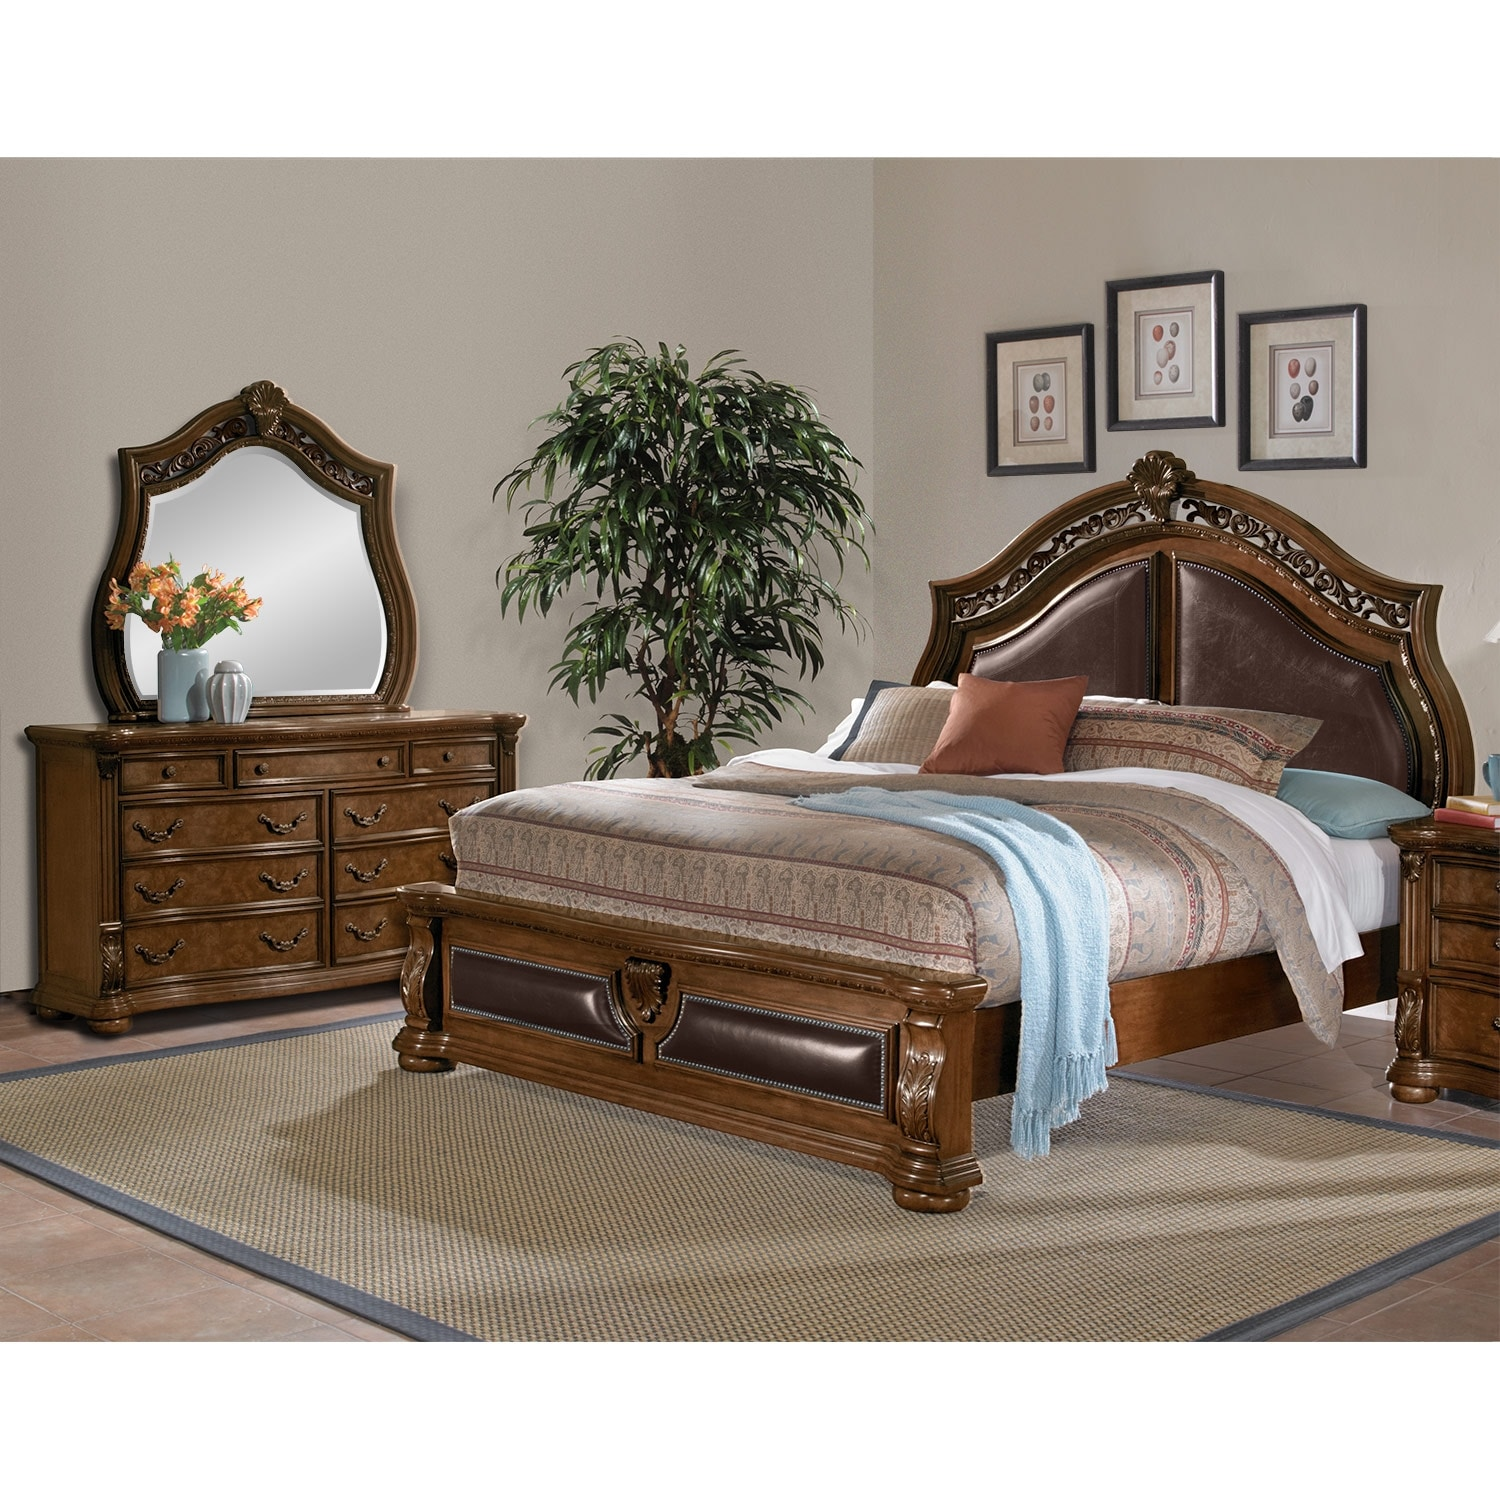 Morocco 5 pc king bedroom value city furniture for King bedroom furniture